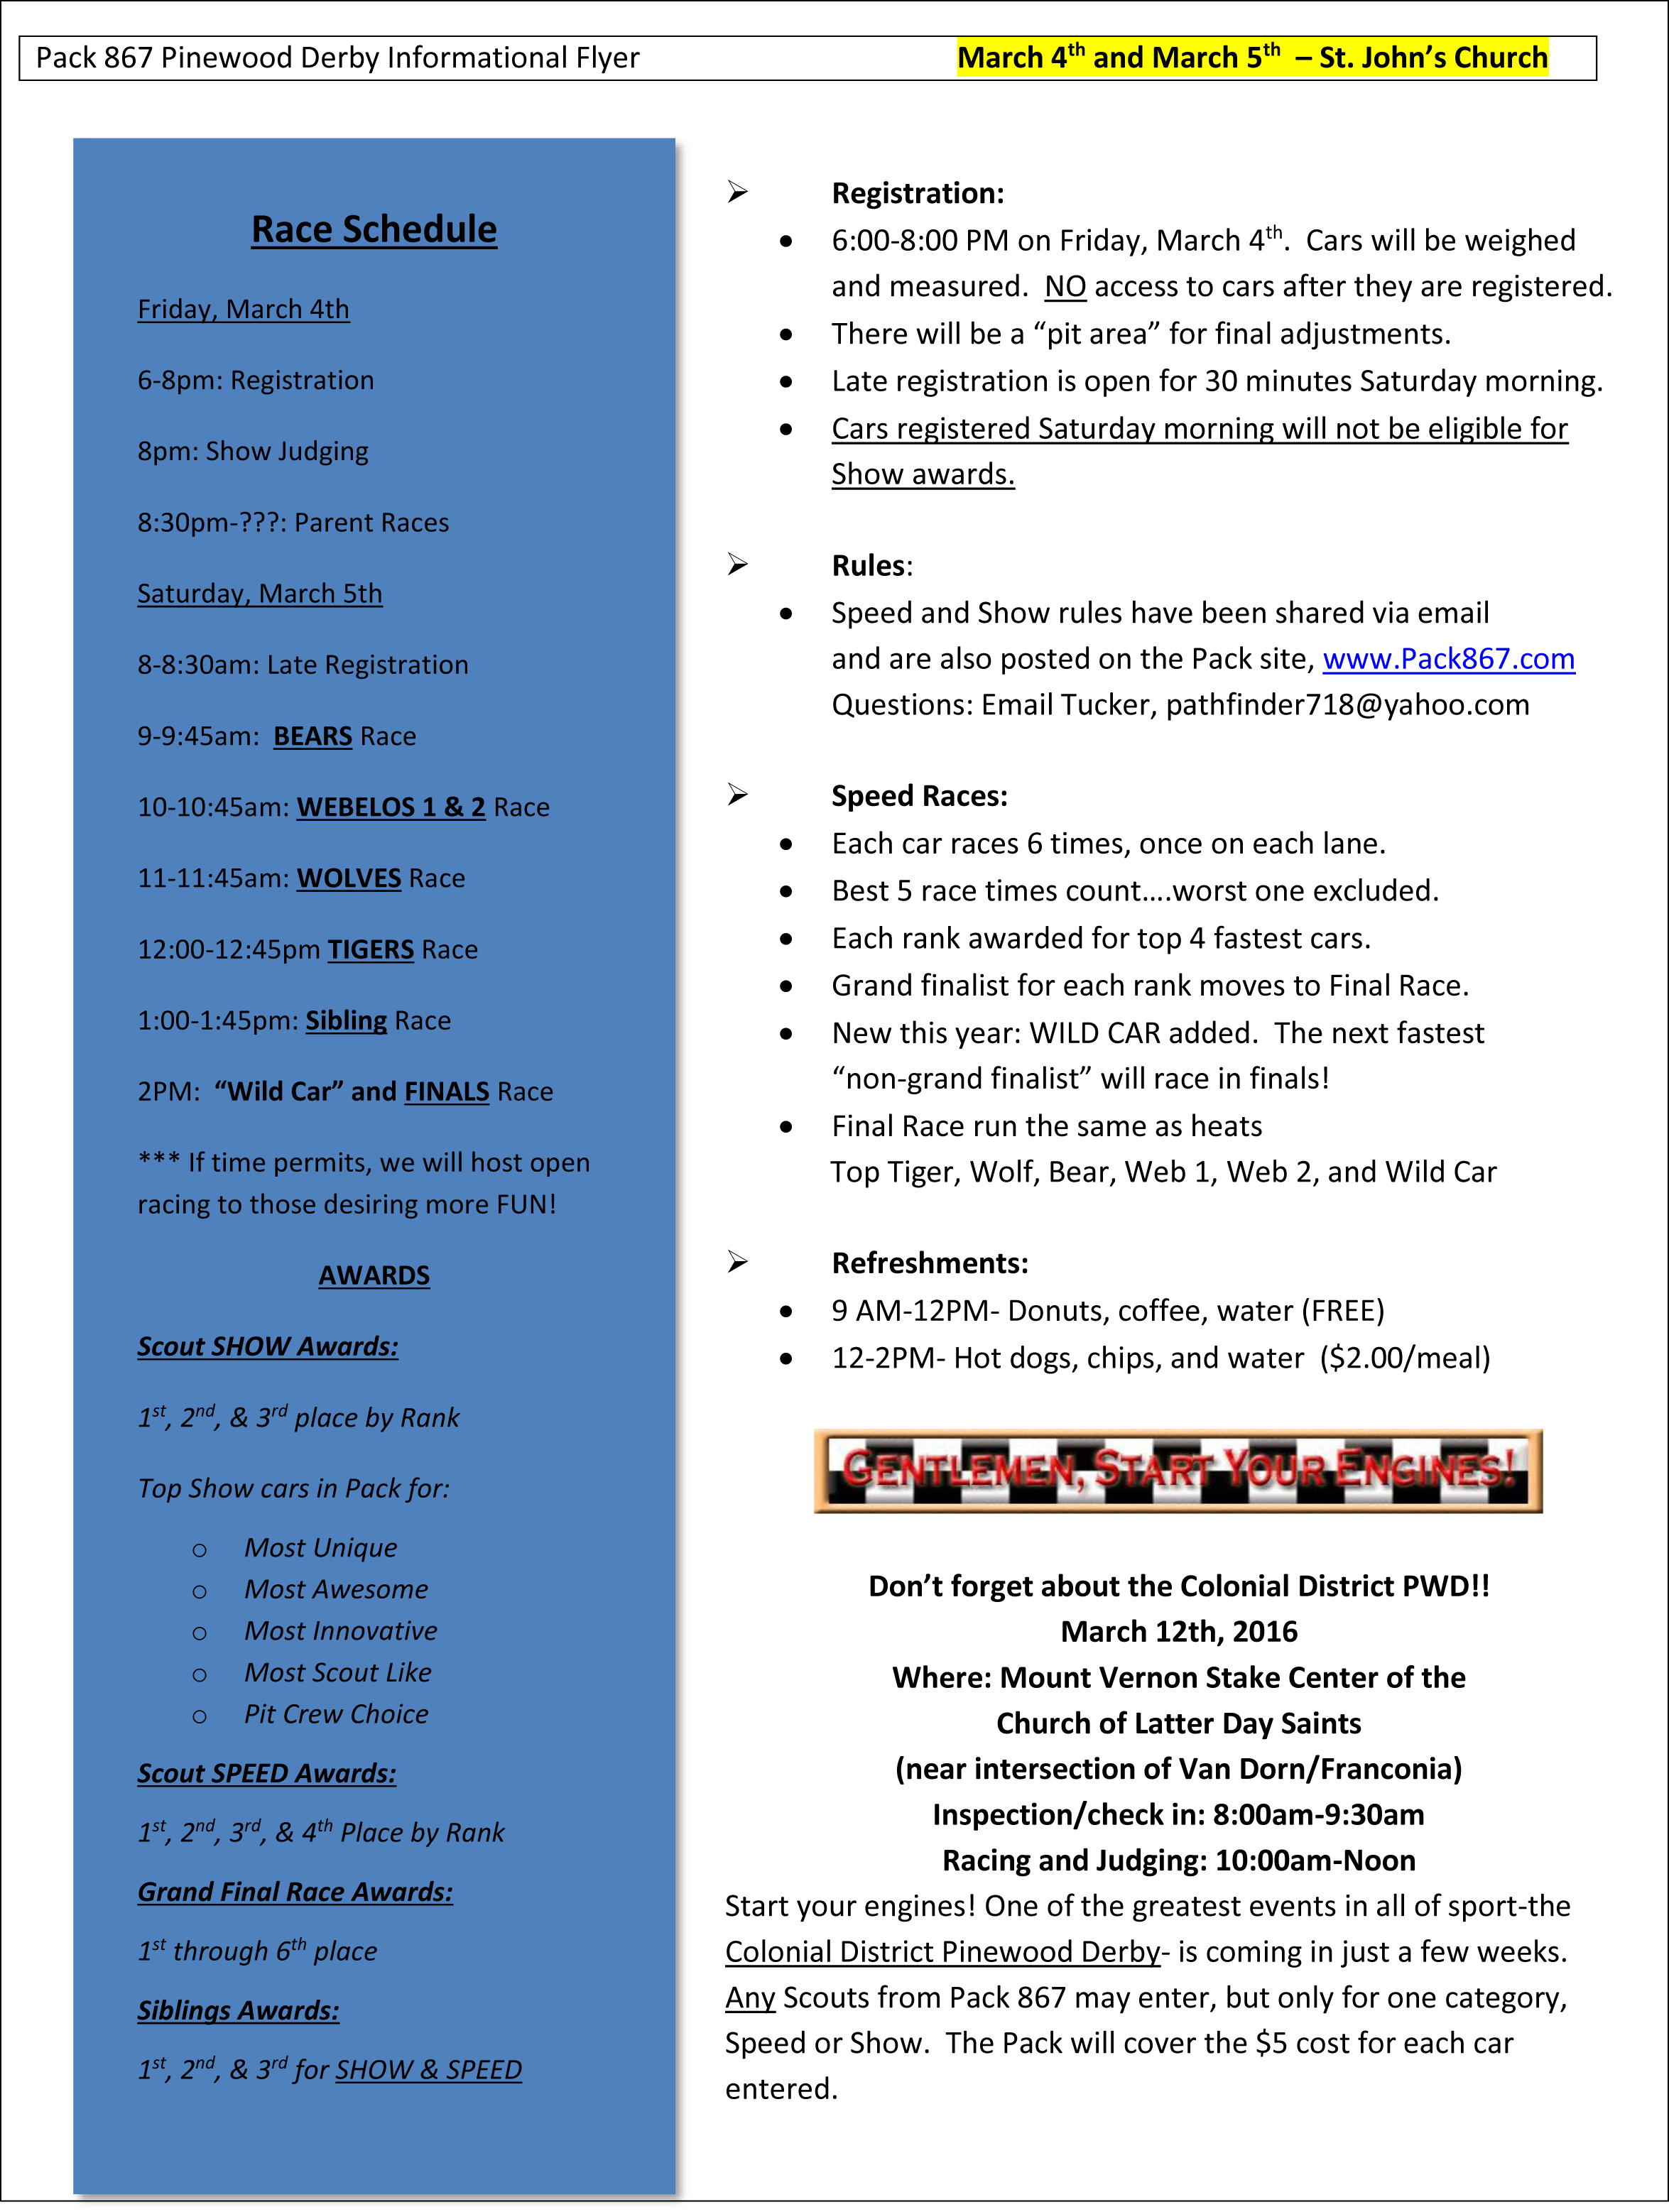 2015-2016 Pack 867 Pinewood Derby Informational Flyer